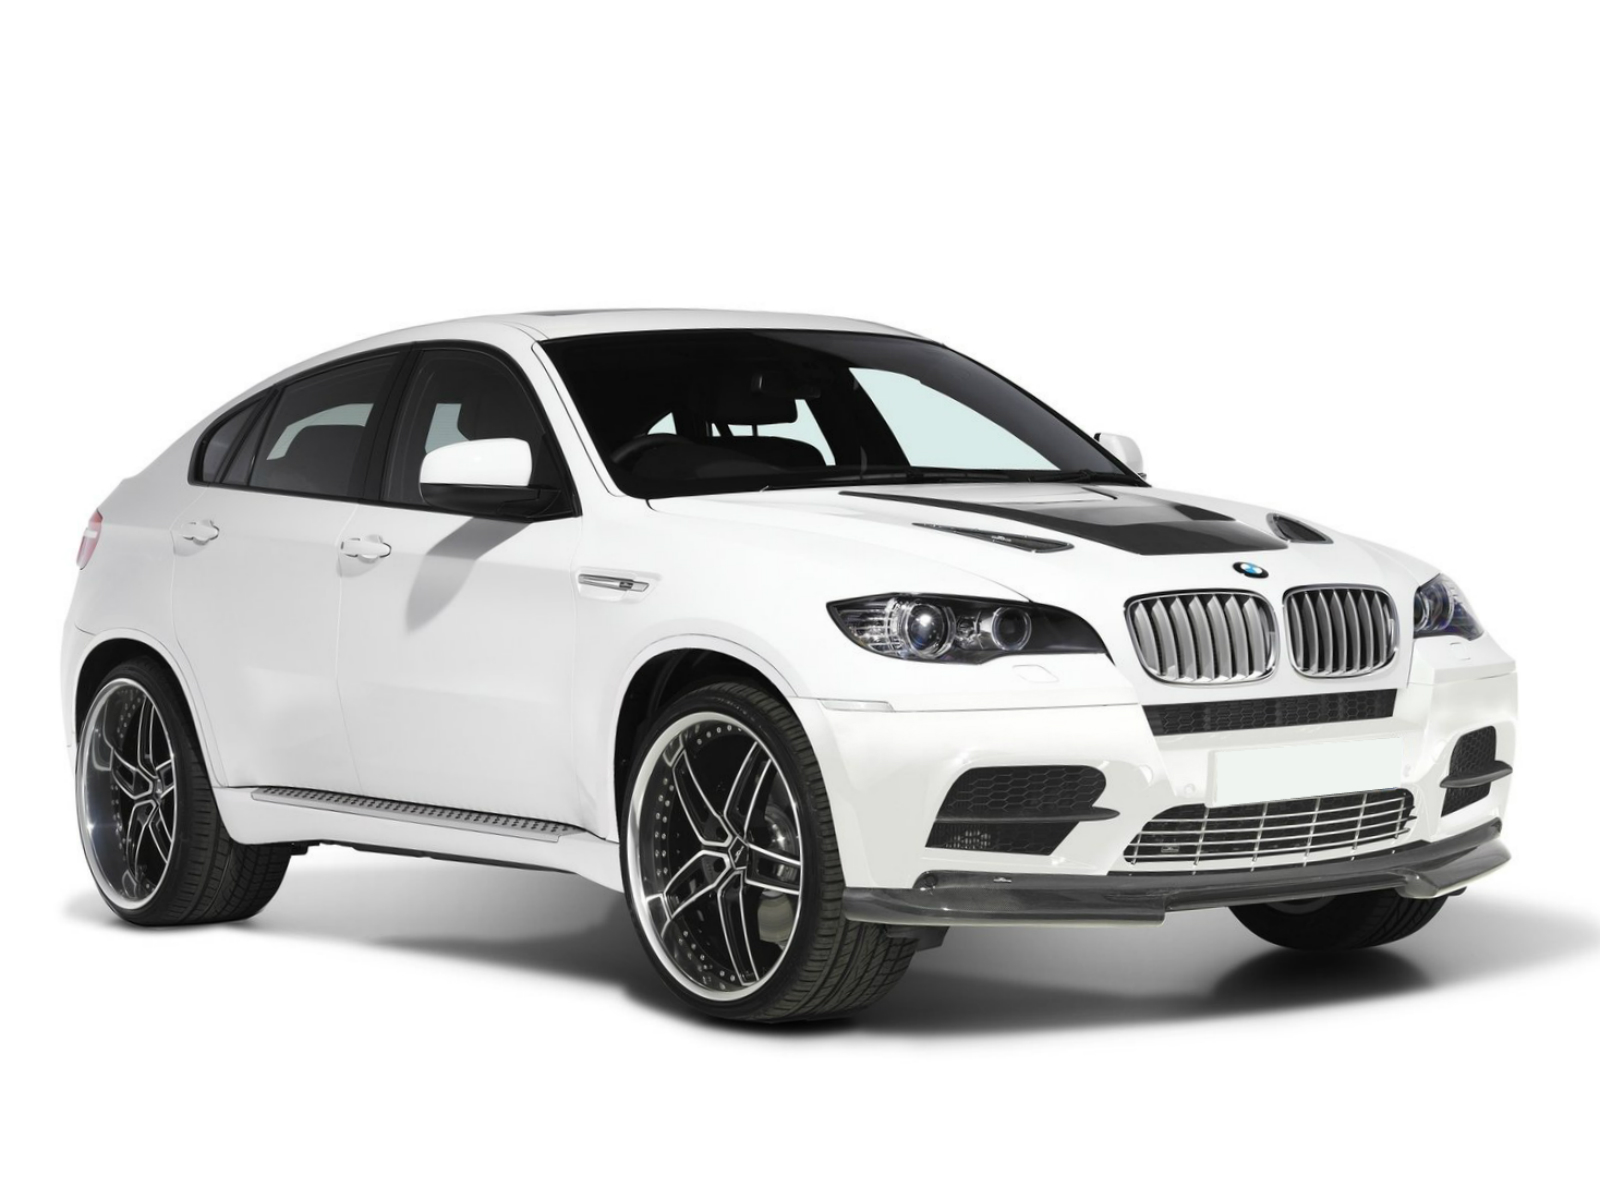 AC Schnitzer BMW X6 M review